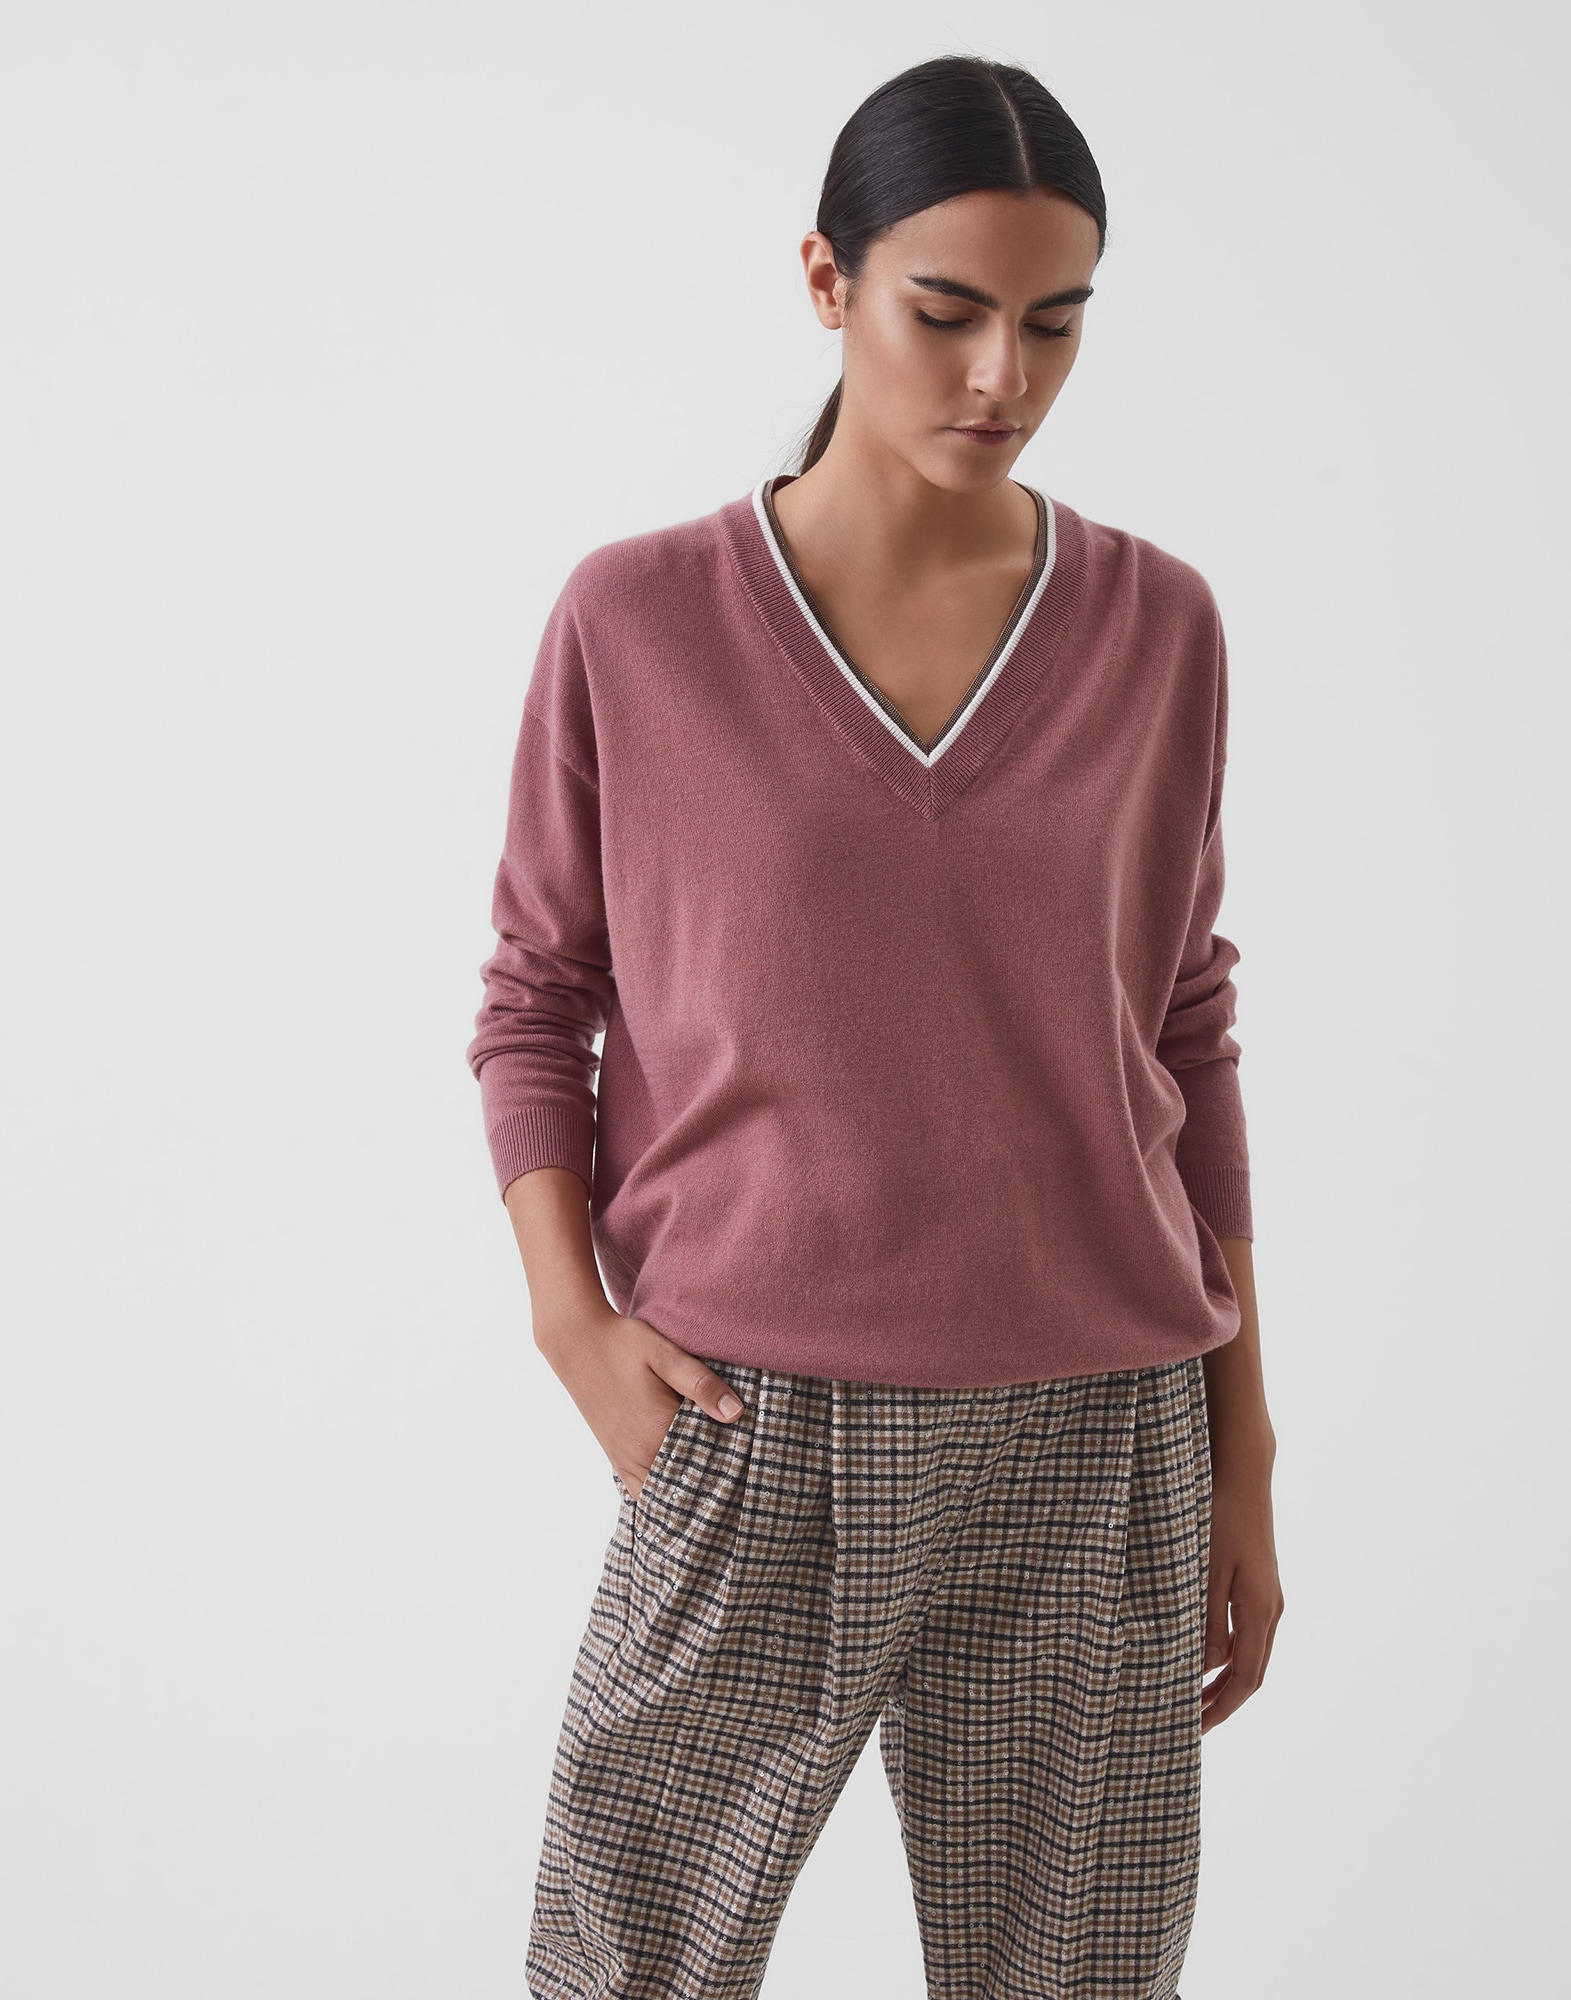 V-neck Sweater Pink Woman 1 - Brunello Cucinelli